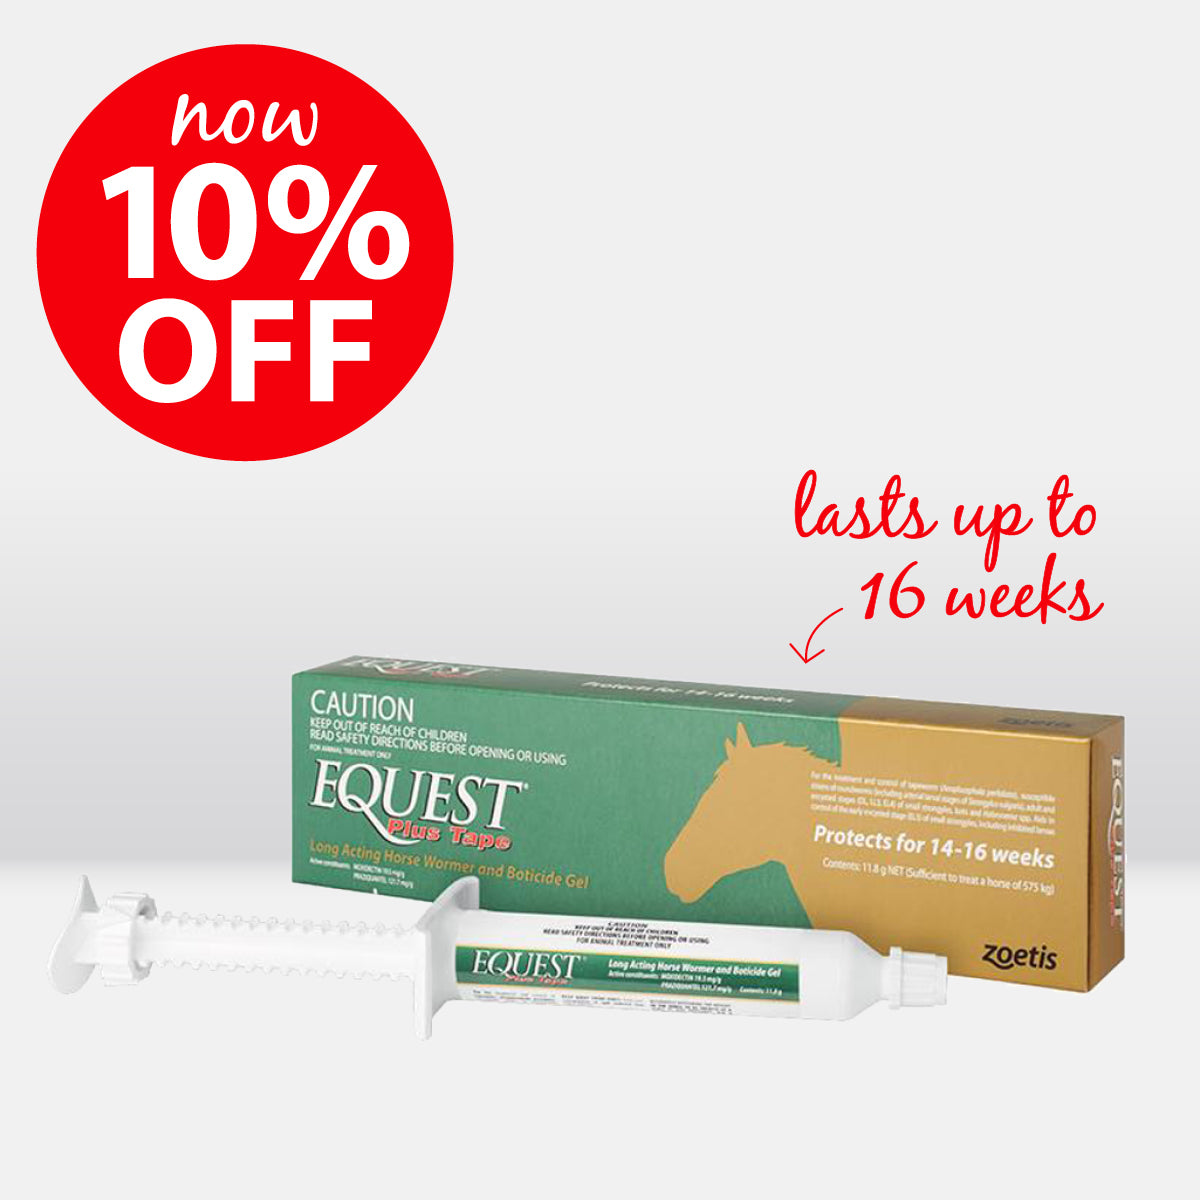 Equest Plus Tape Gel on sale